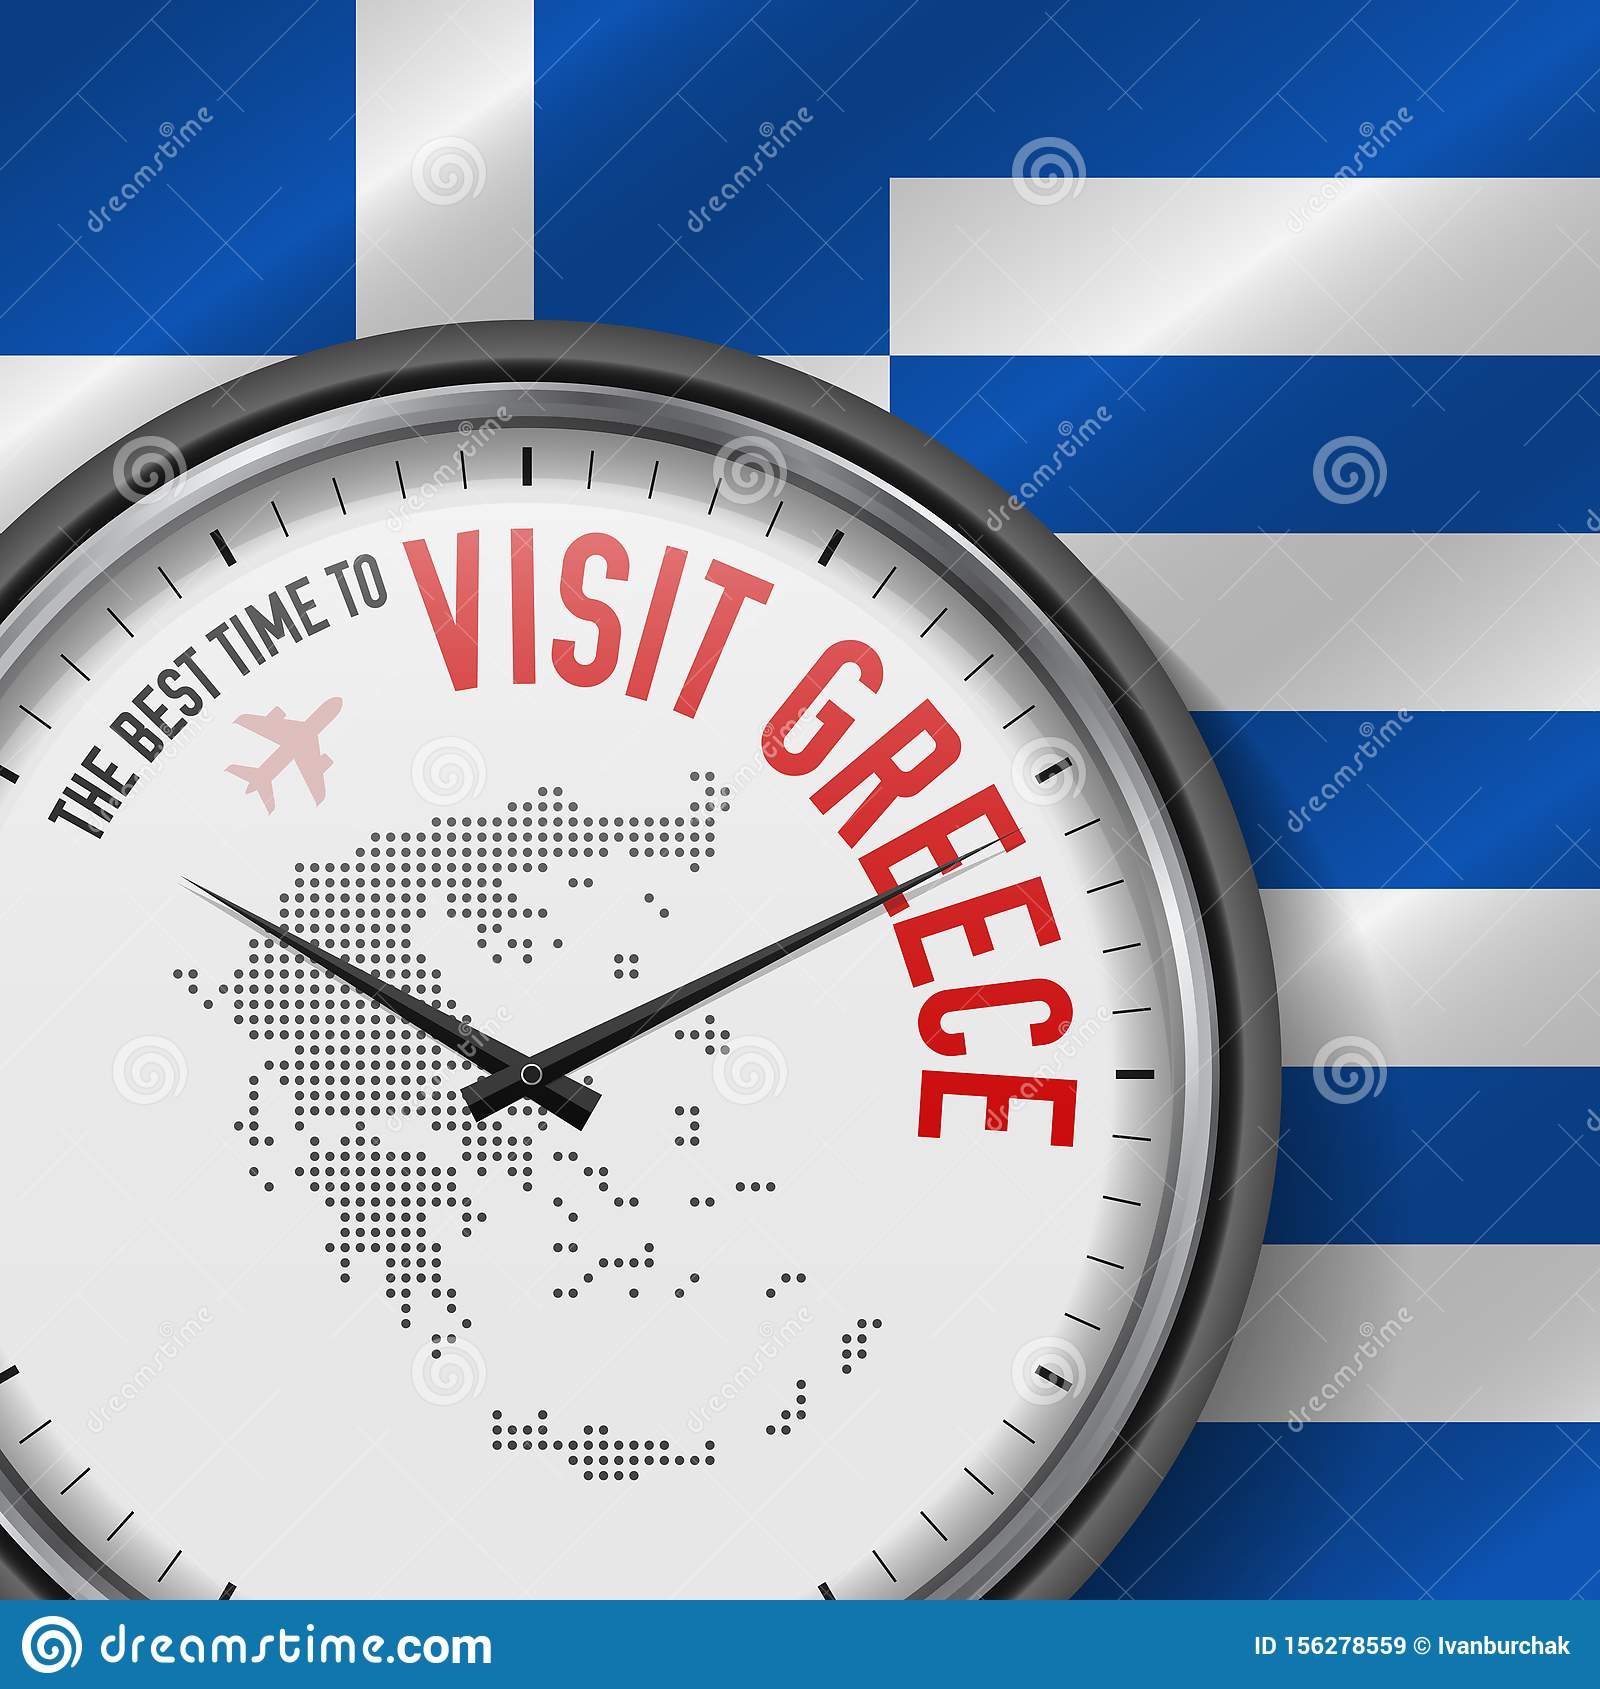 The Best Time to Visit Greece. Flight, Tour to Greece. Vector Illustration